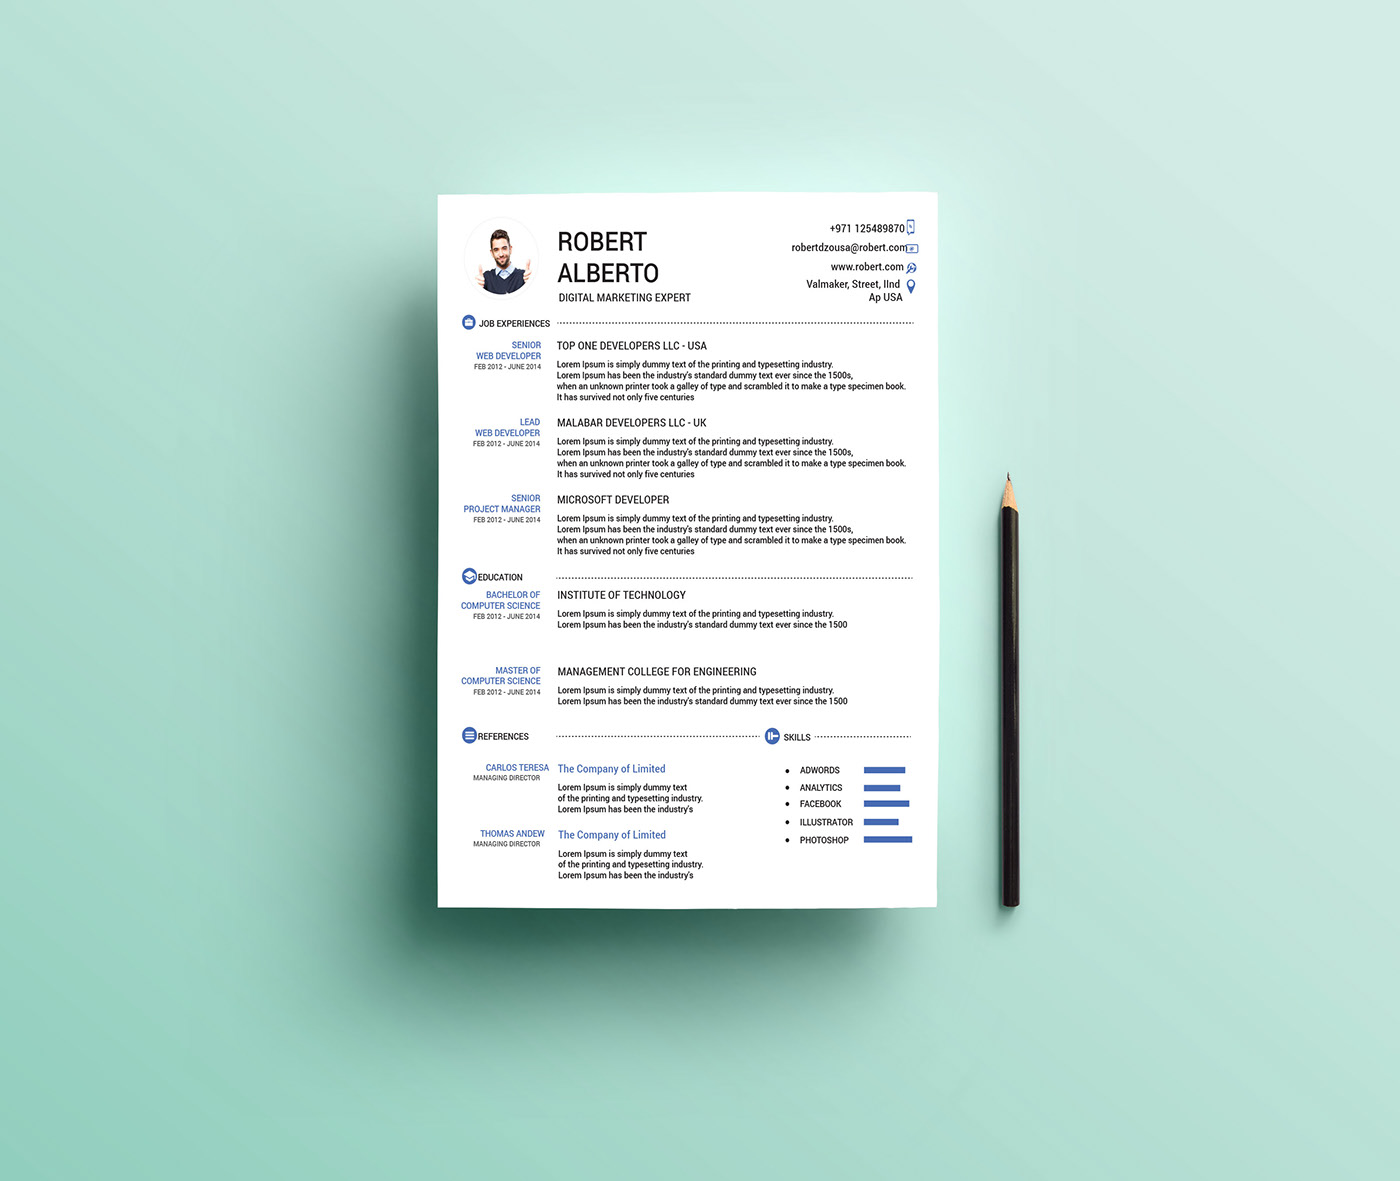 free one resume templates summary clean microsoft word template for bakery job Resume One Page Summary Resume